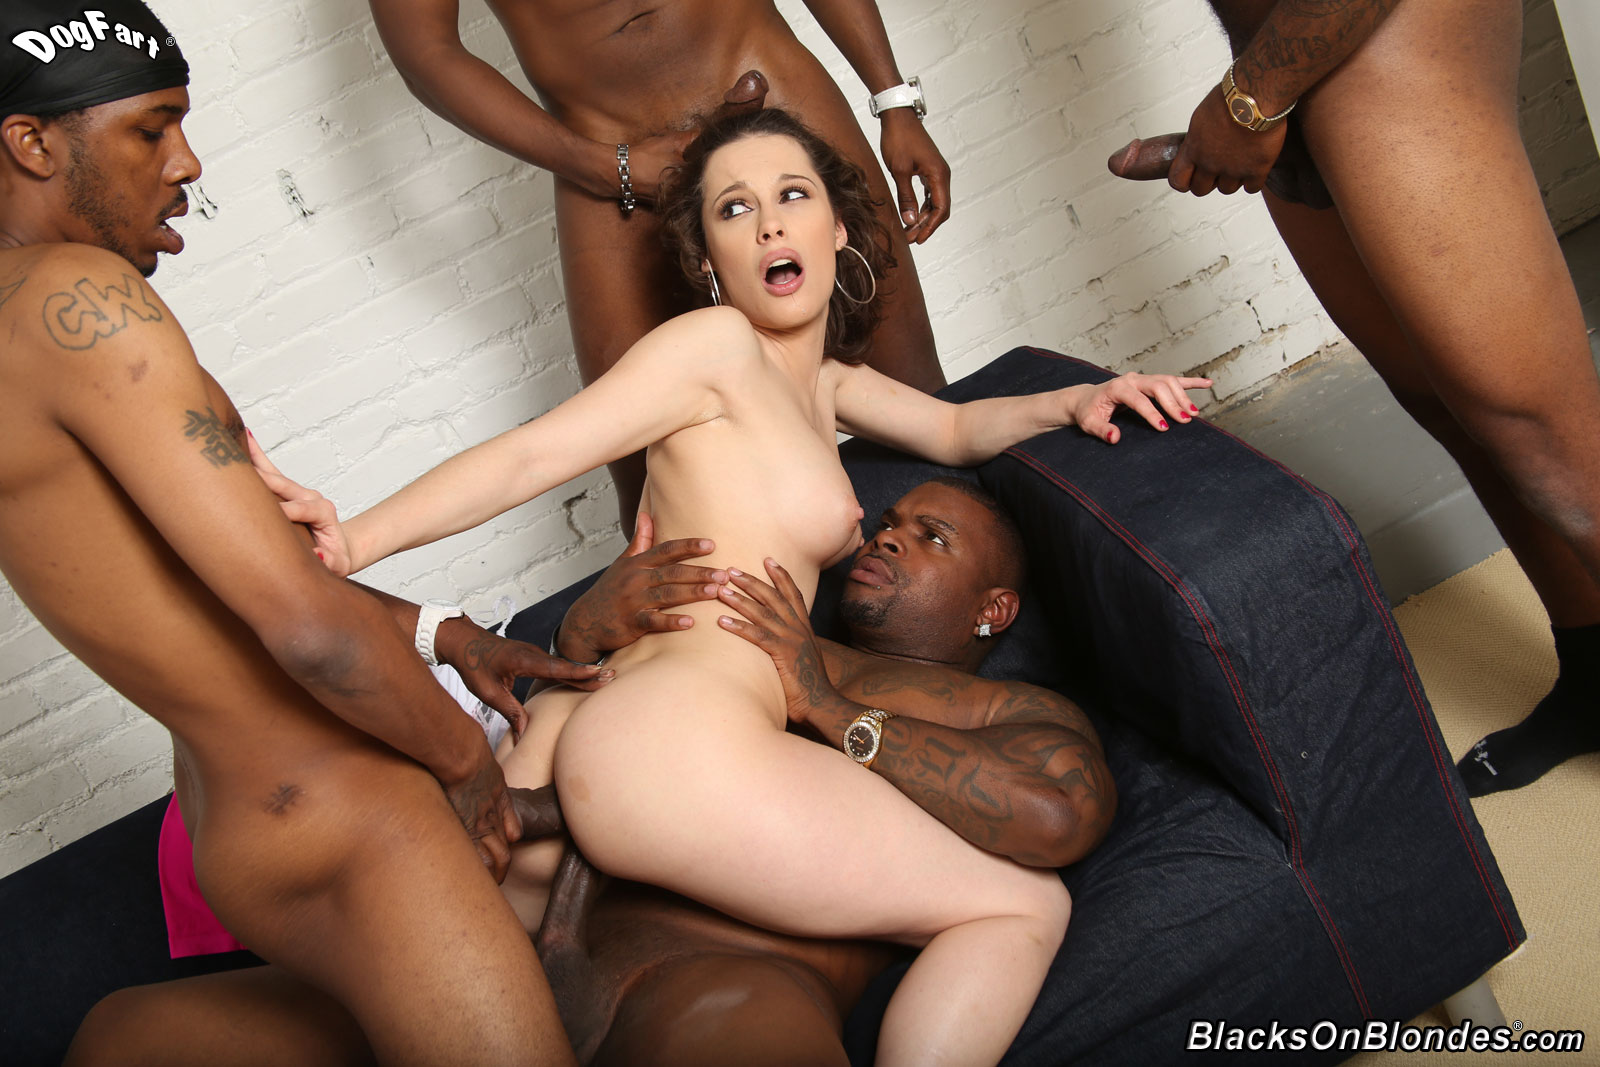 Interracial big tit sex hd blood movie pornos sensual pornstar